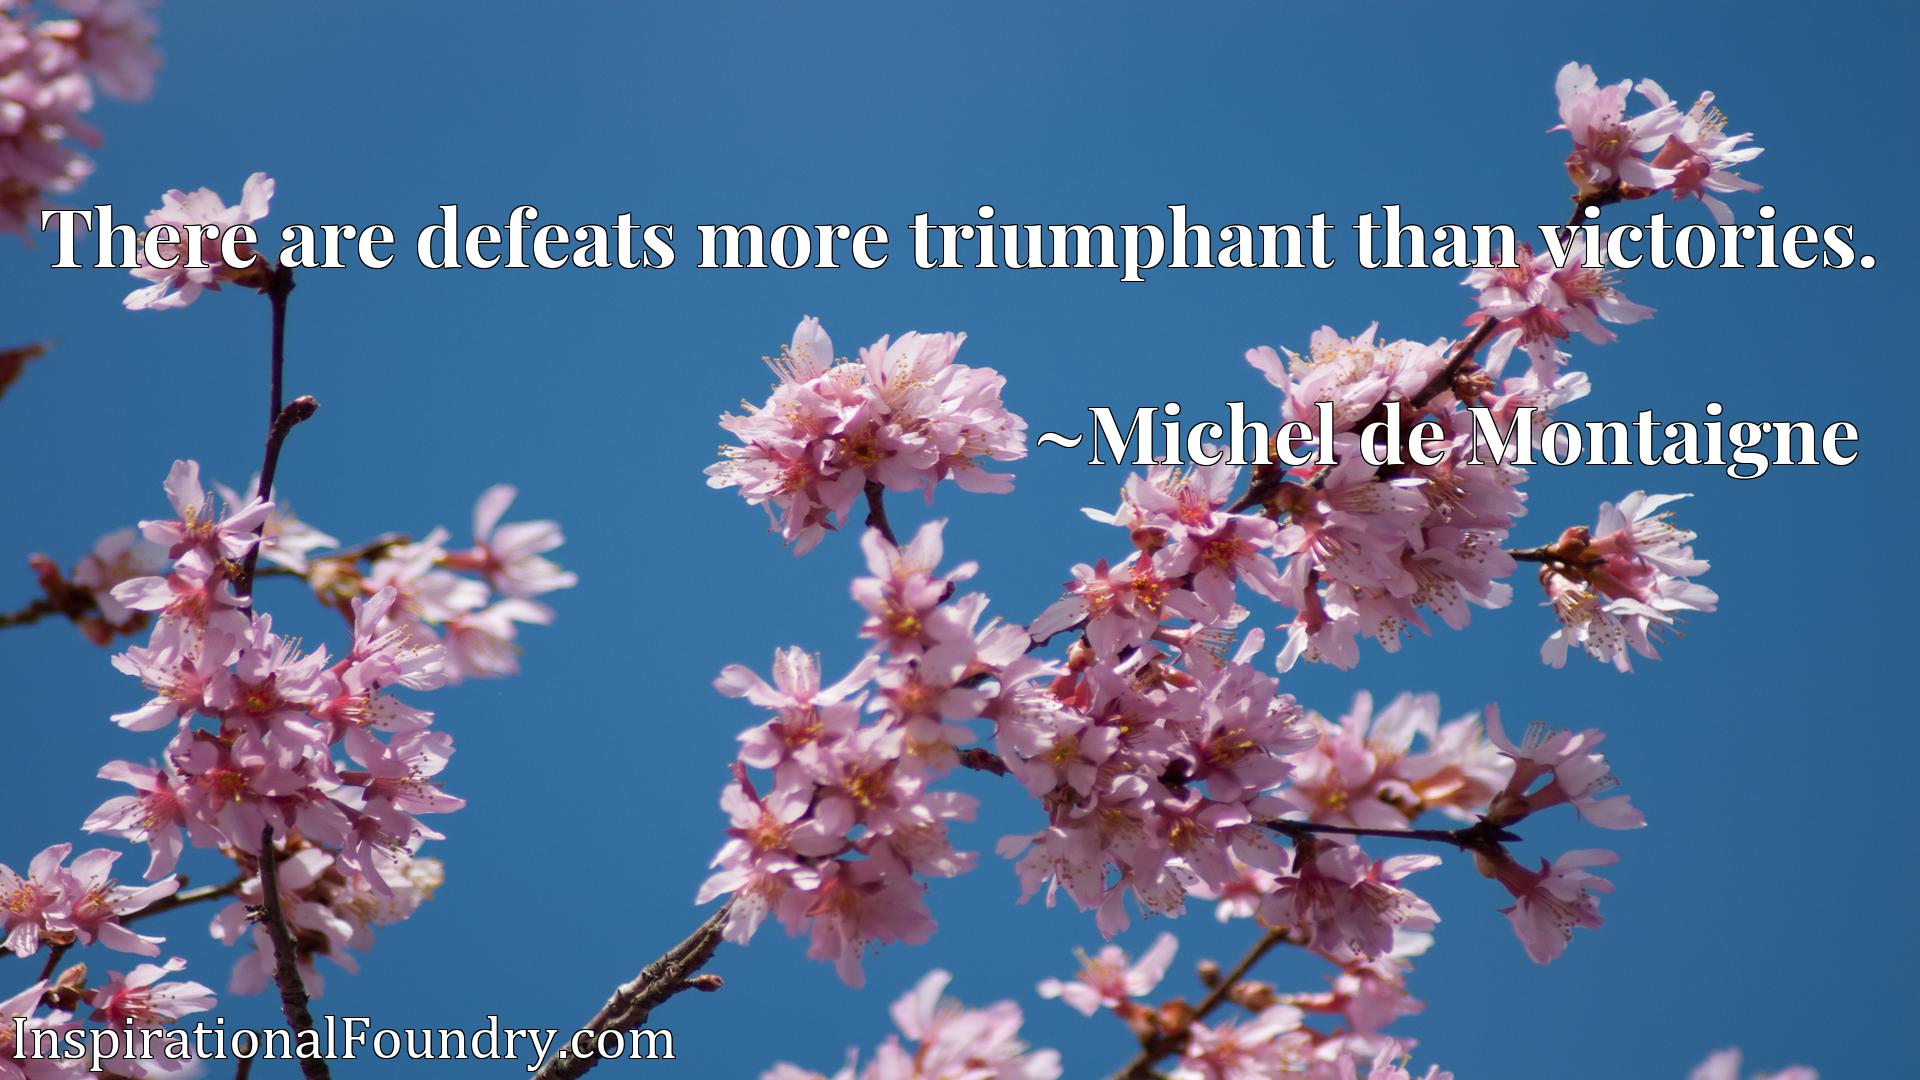 There are defeats more triumphant than victories.